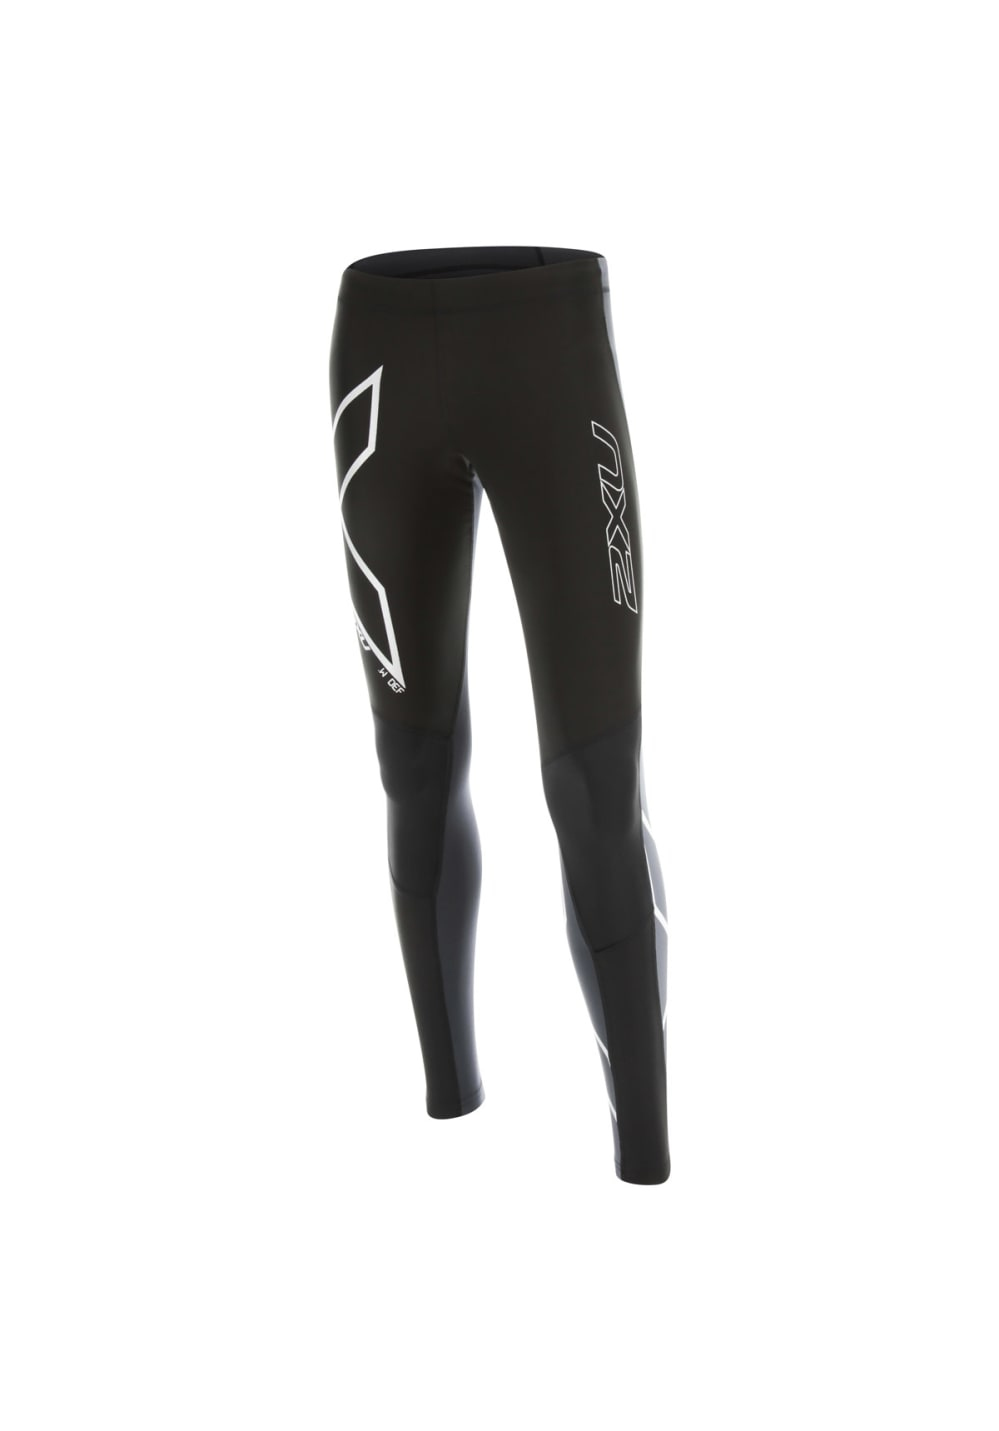 2XU G:2 Wind Defence Thermal Compression Femmes Article compression